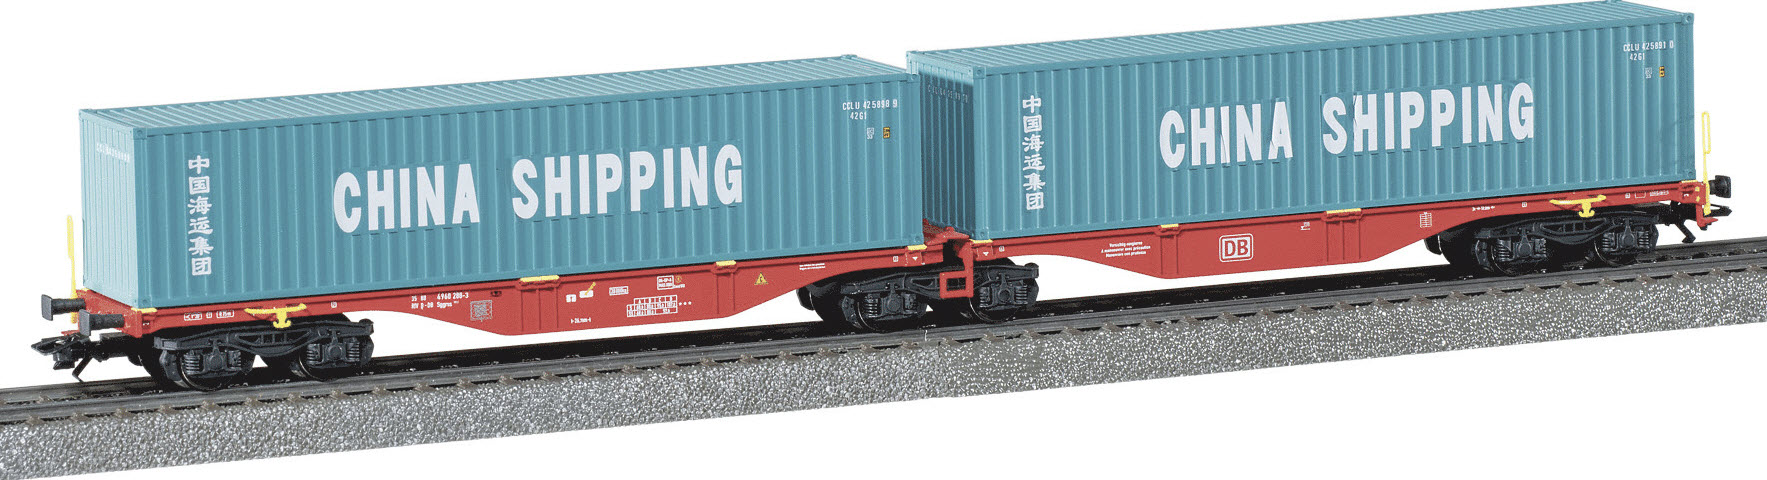 Marklin 47809 'China Shipping' Limited Run Container Car for EUROTRAIN